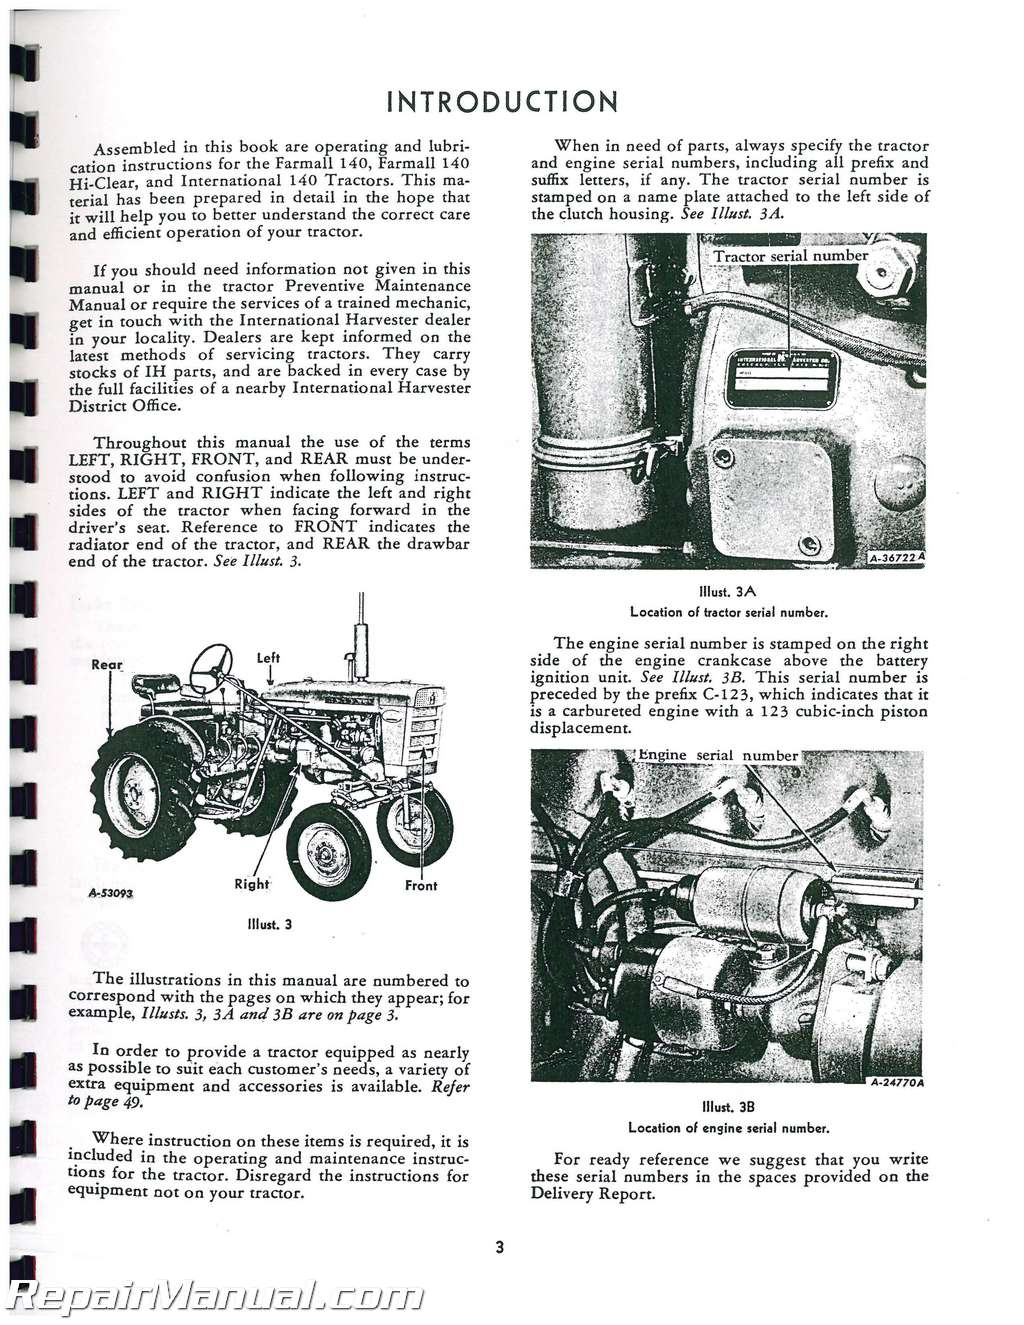 International Harvester Farmall 140 Operators Manual